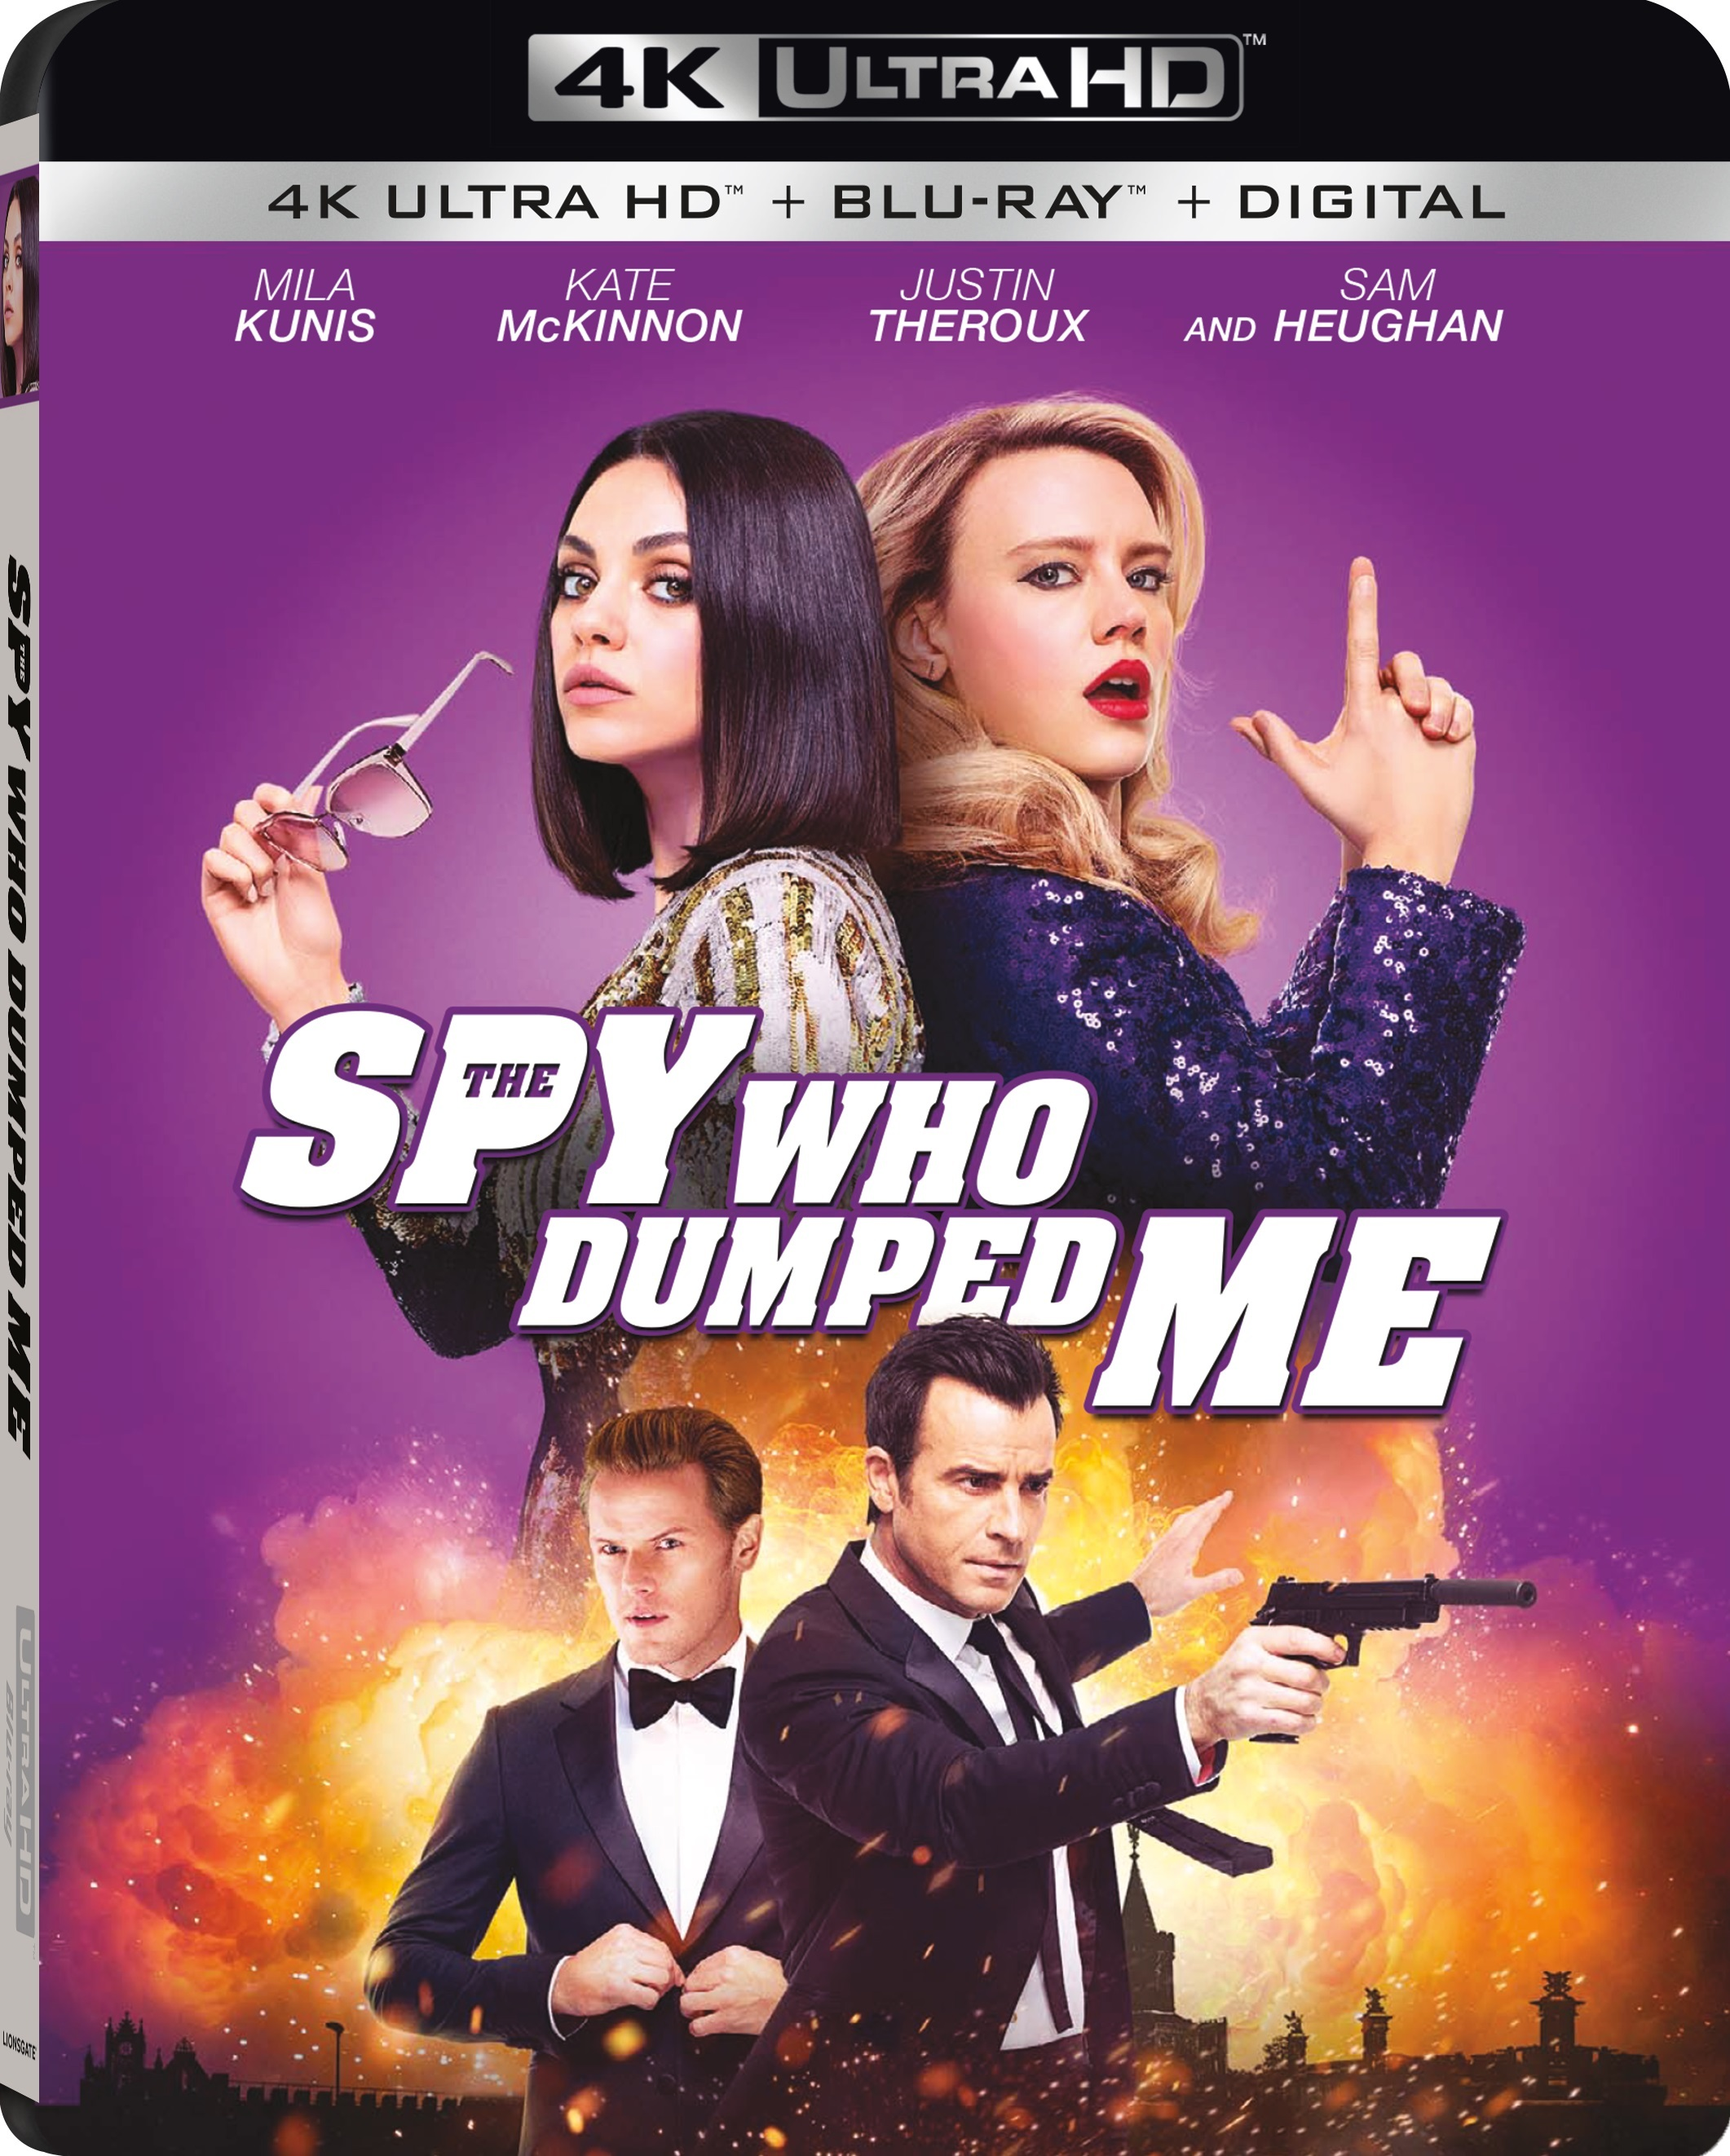 The Spy Who Dumped Me 4K (2018) Ultra HD Blu-ray